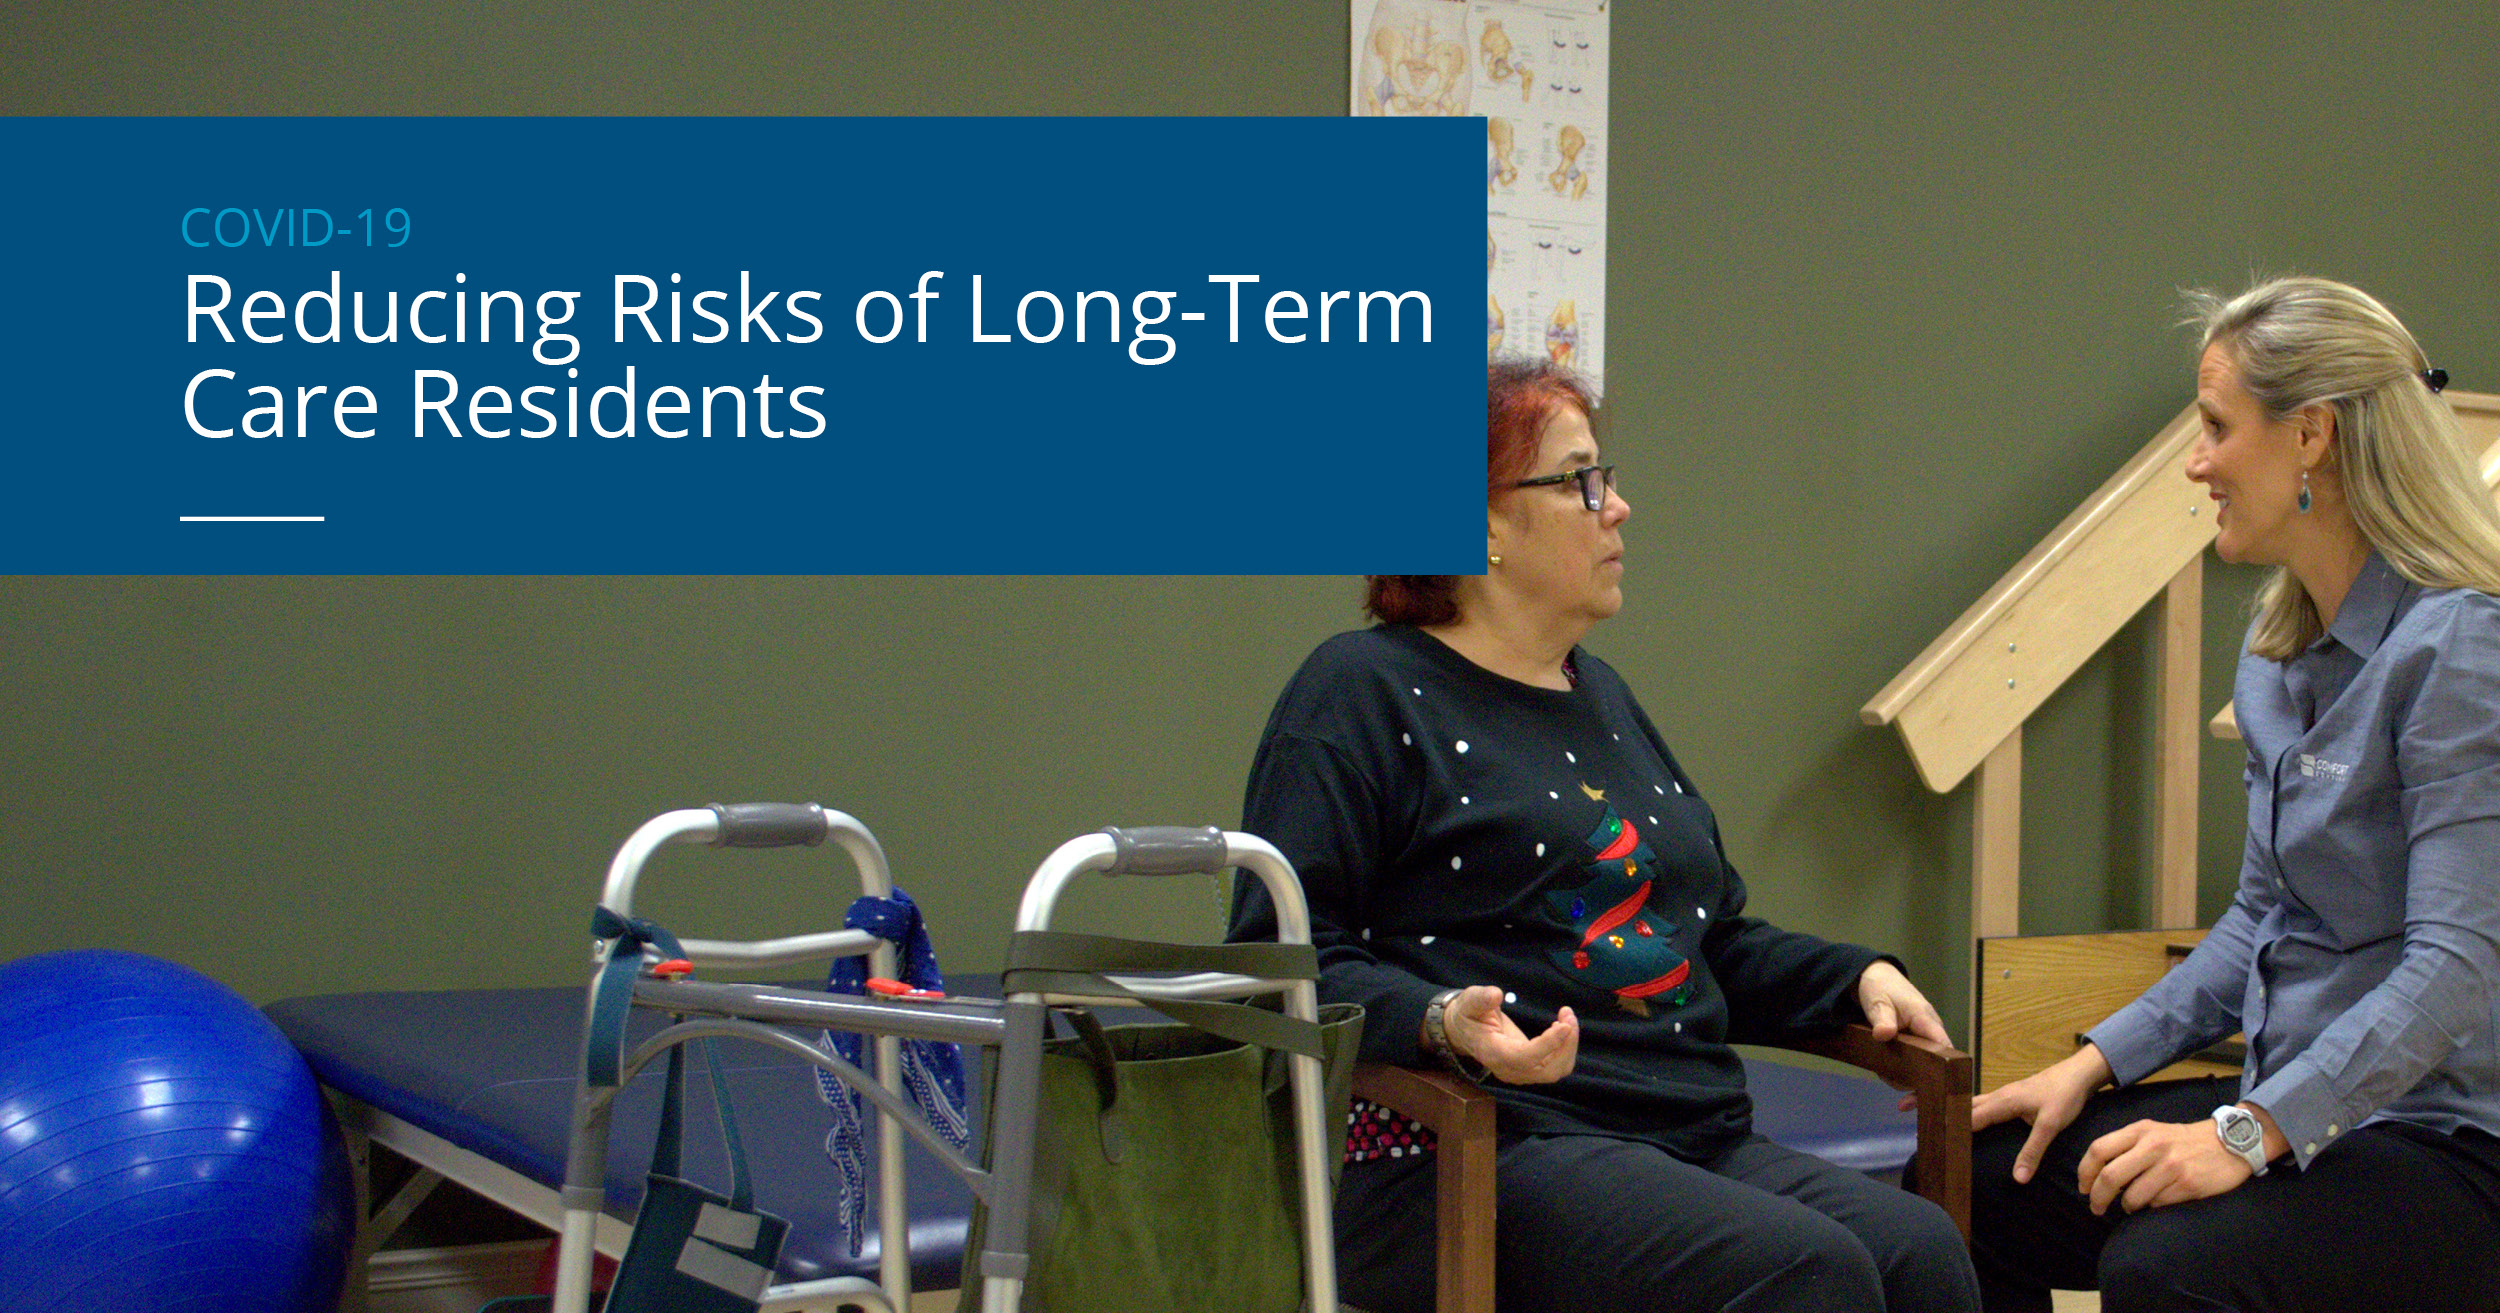 Reducing Risks of Long-Term Care Residents